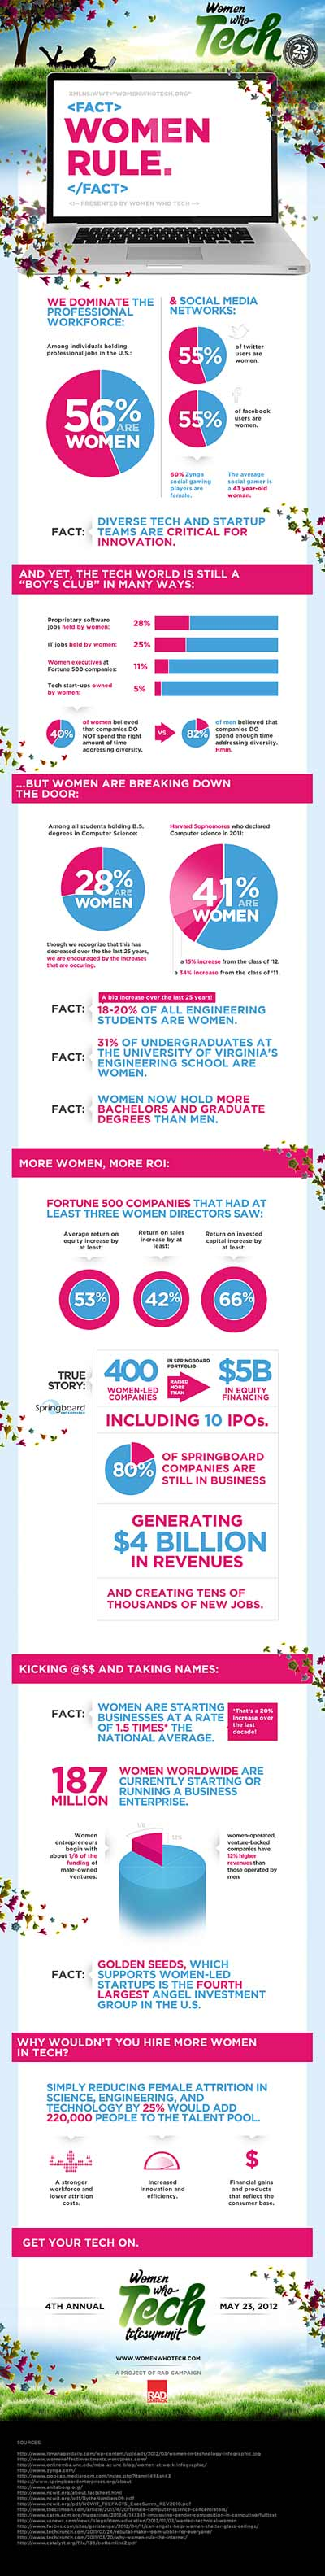 Women Who Tech Infographic